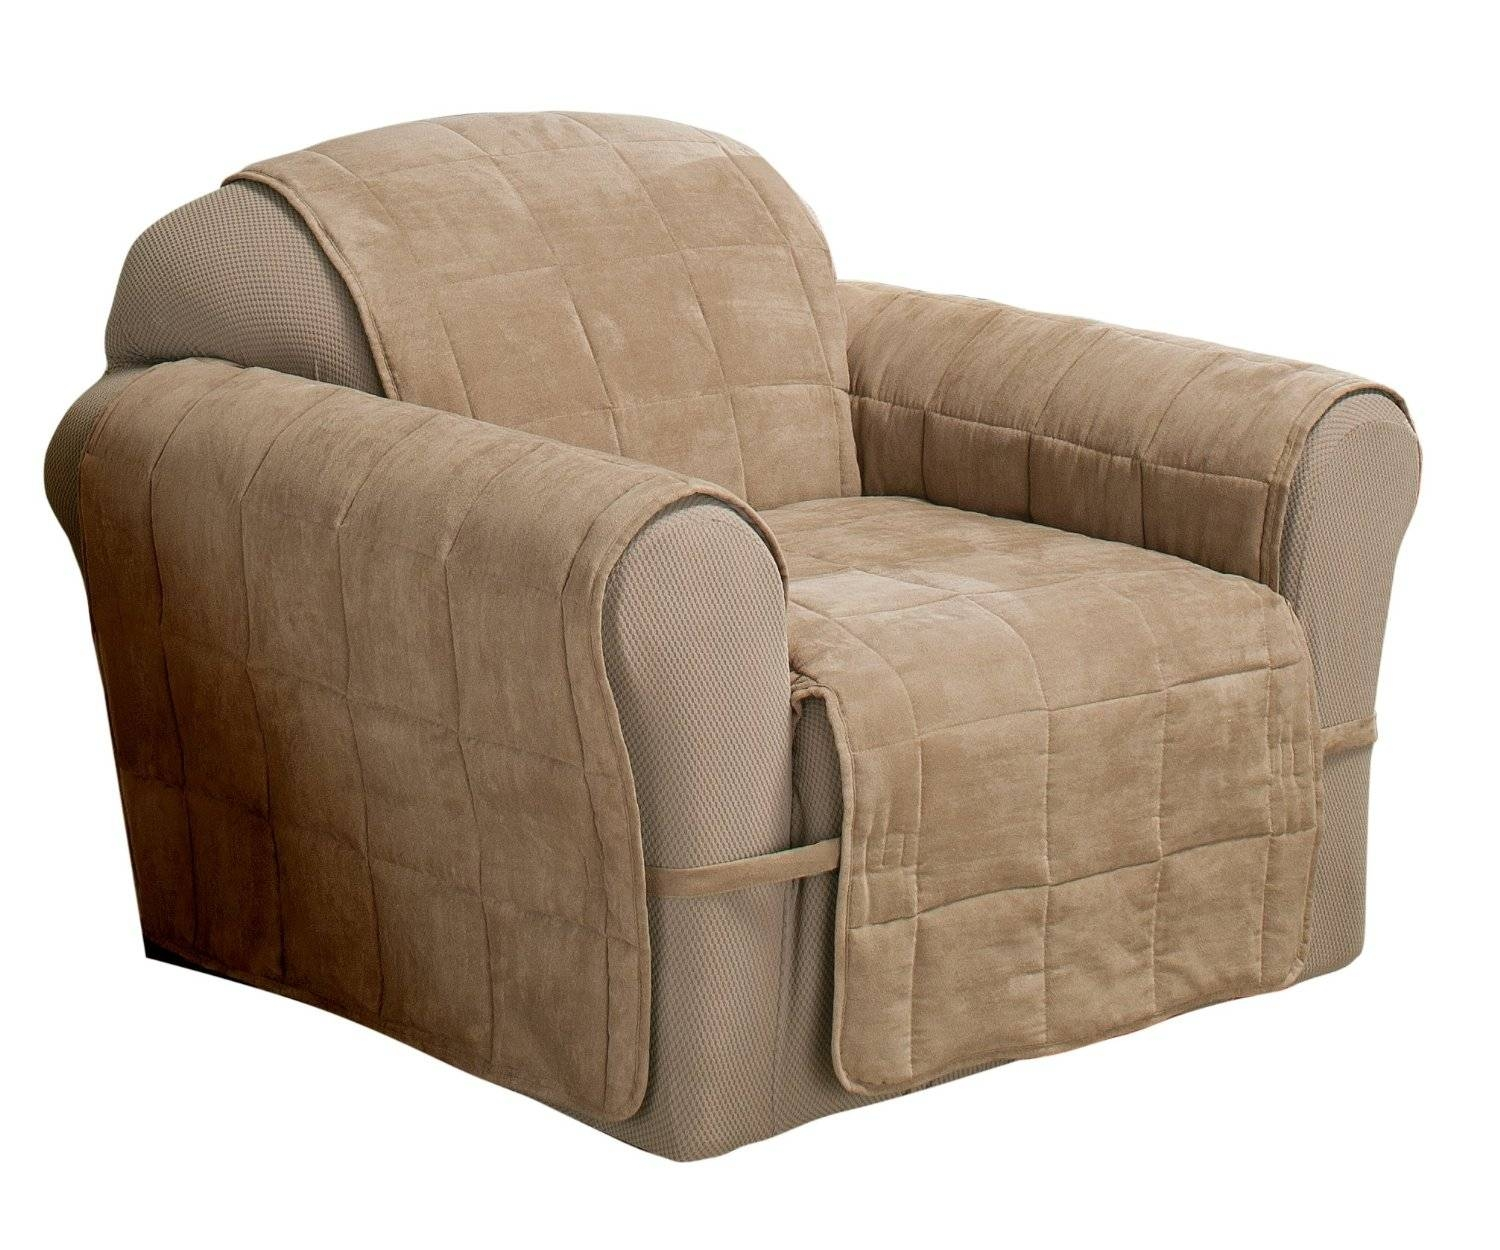 Sofas Center Loose Covers For Washable Slipcovers Seater Living within Covers For Sofas And Chairs (Image 15 of 15)